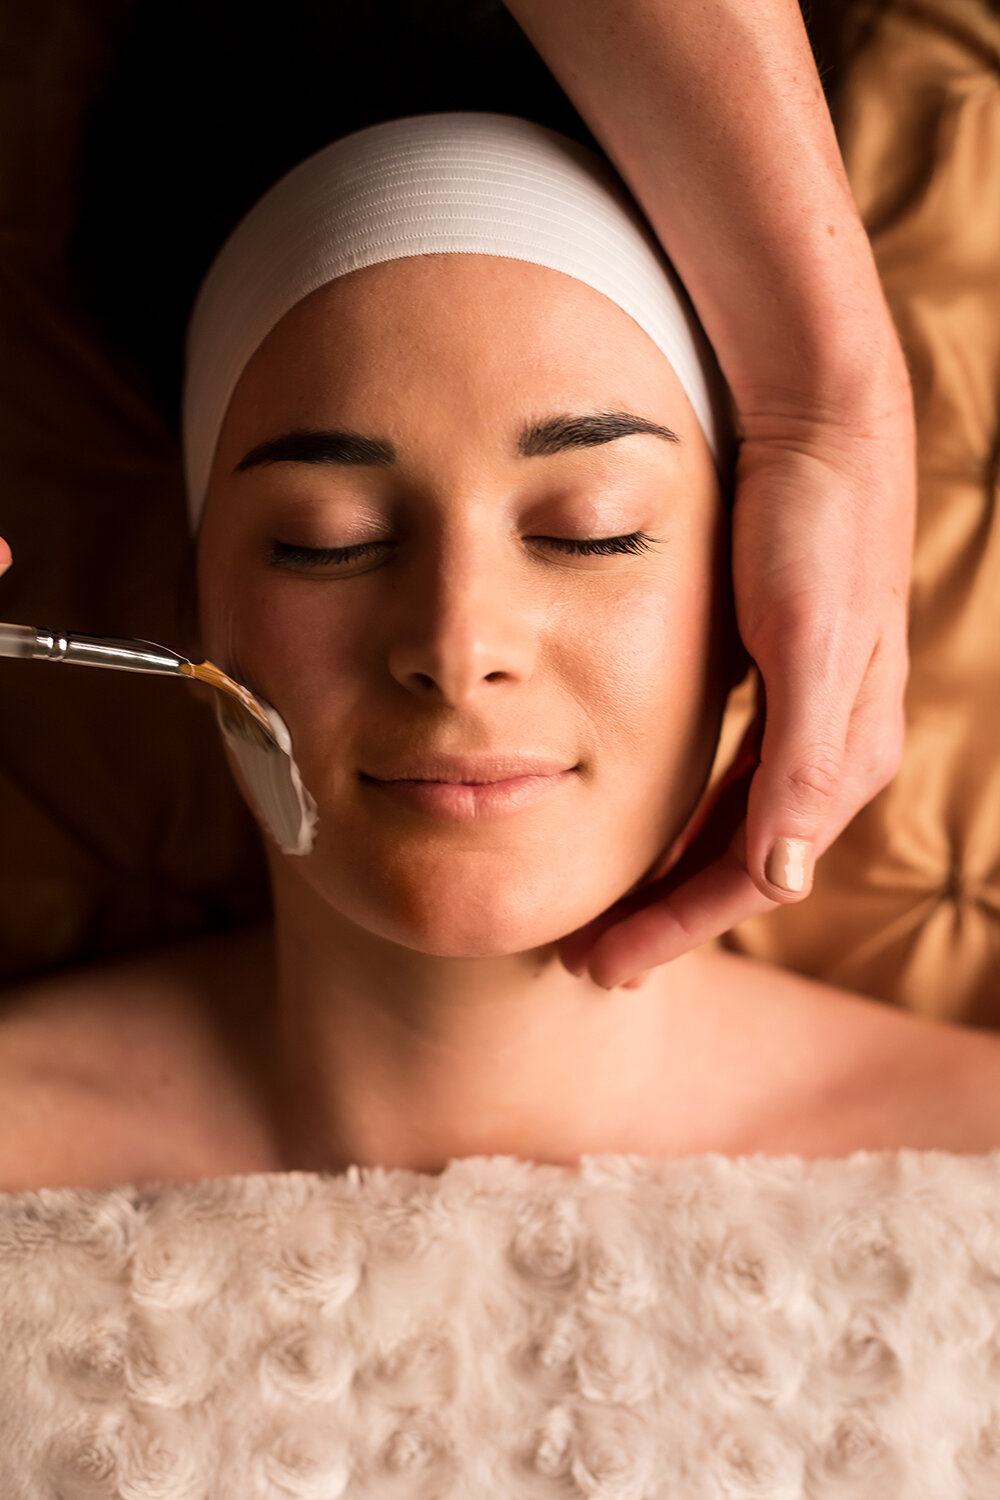 Guests can also enjoy organic facials, makeup and beauty services, and more.